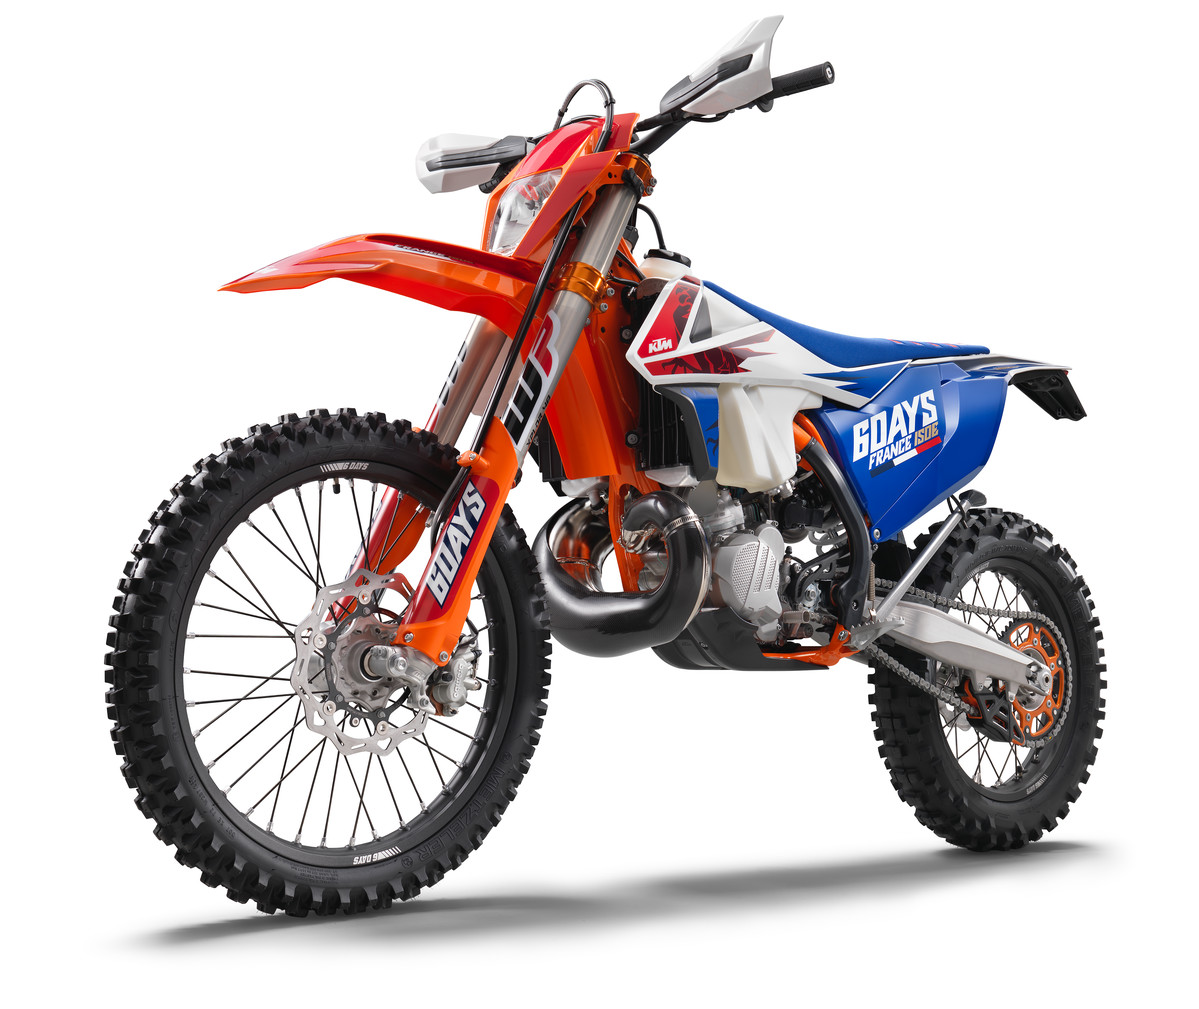 2018 ktm 690. brilliant 690 2018 ktm exc tpi 250 six day intended ktm 690